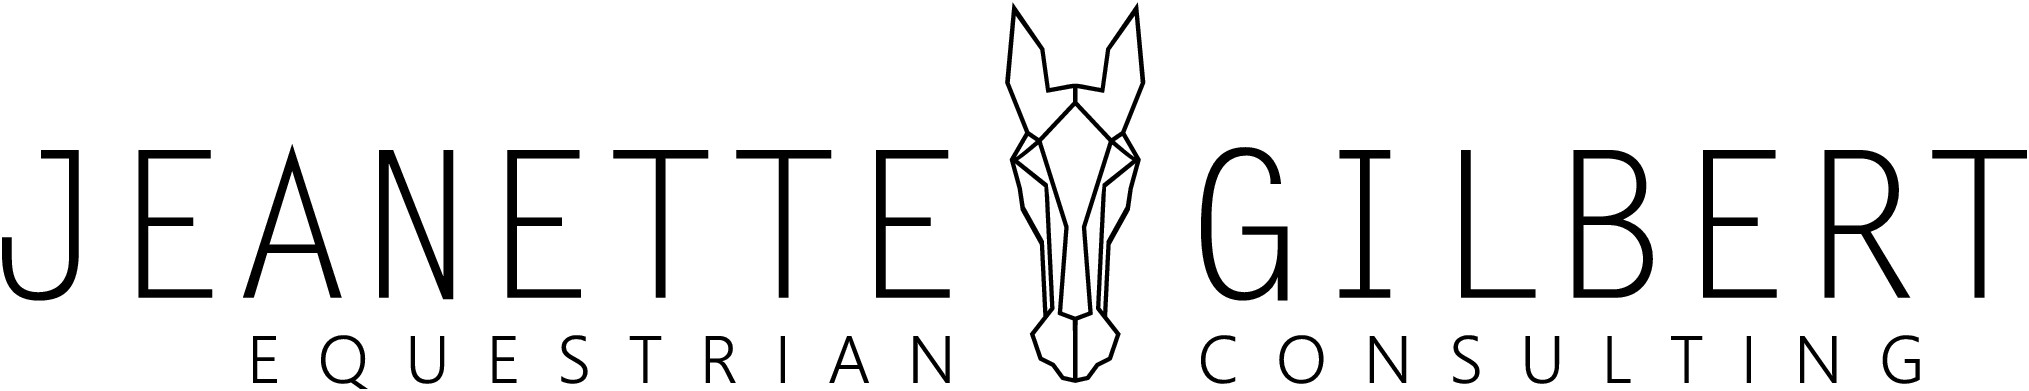 I need a logo for my equestrian consulting business!